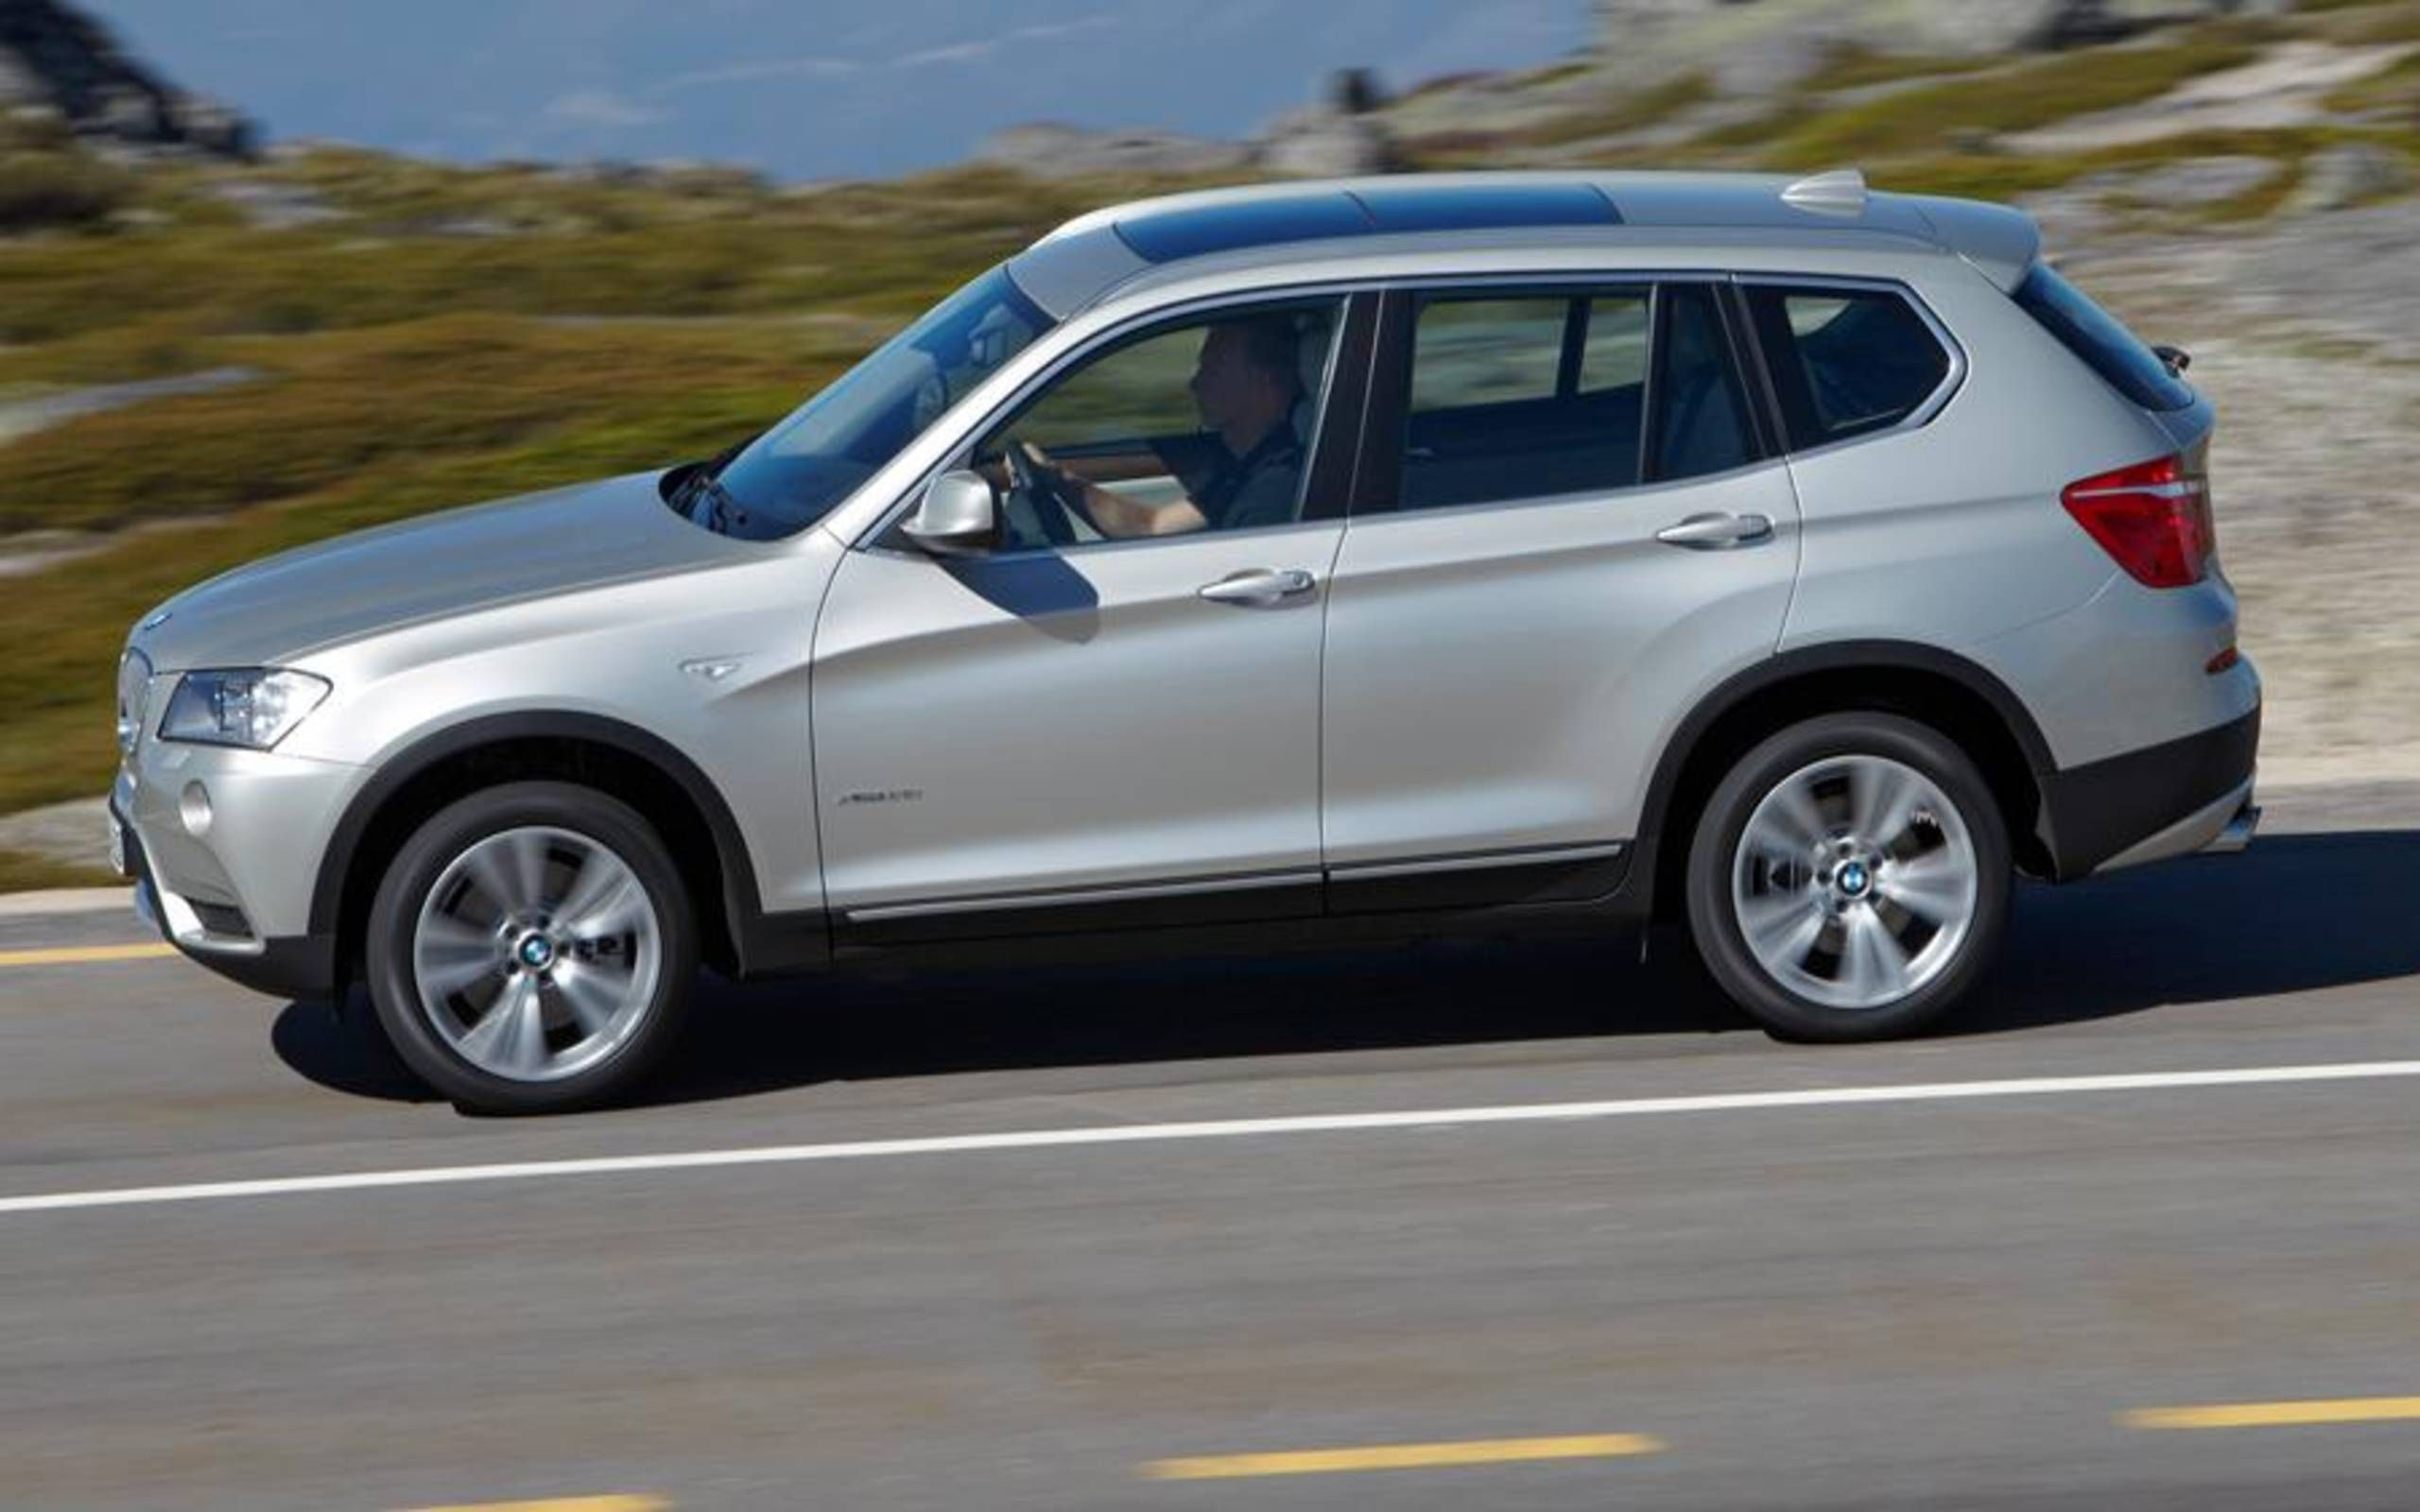 2012 Bmw X3 Xdrive 28i Review Notes Certainly Improved But We Still Don T Like Run Flat Tires